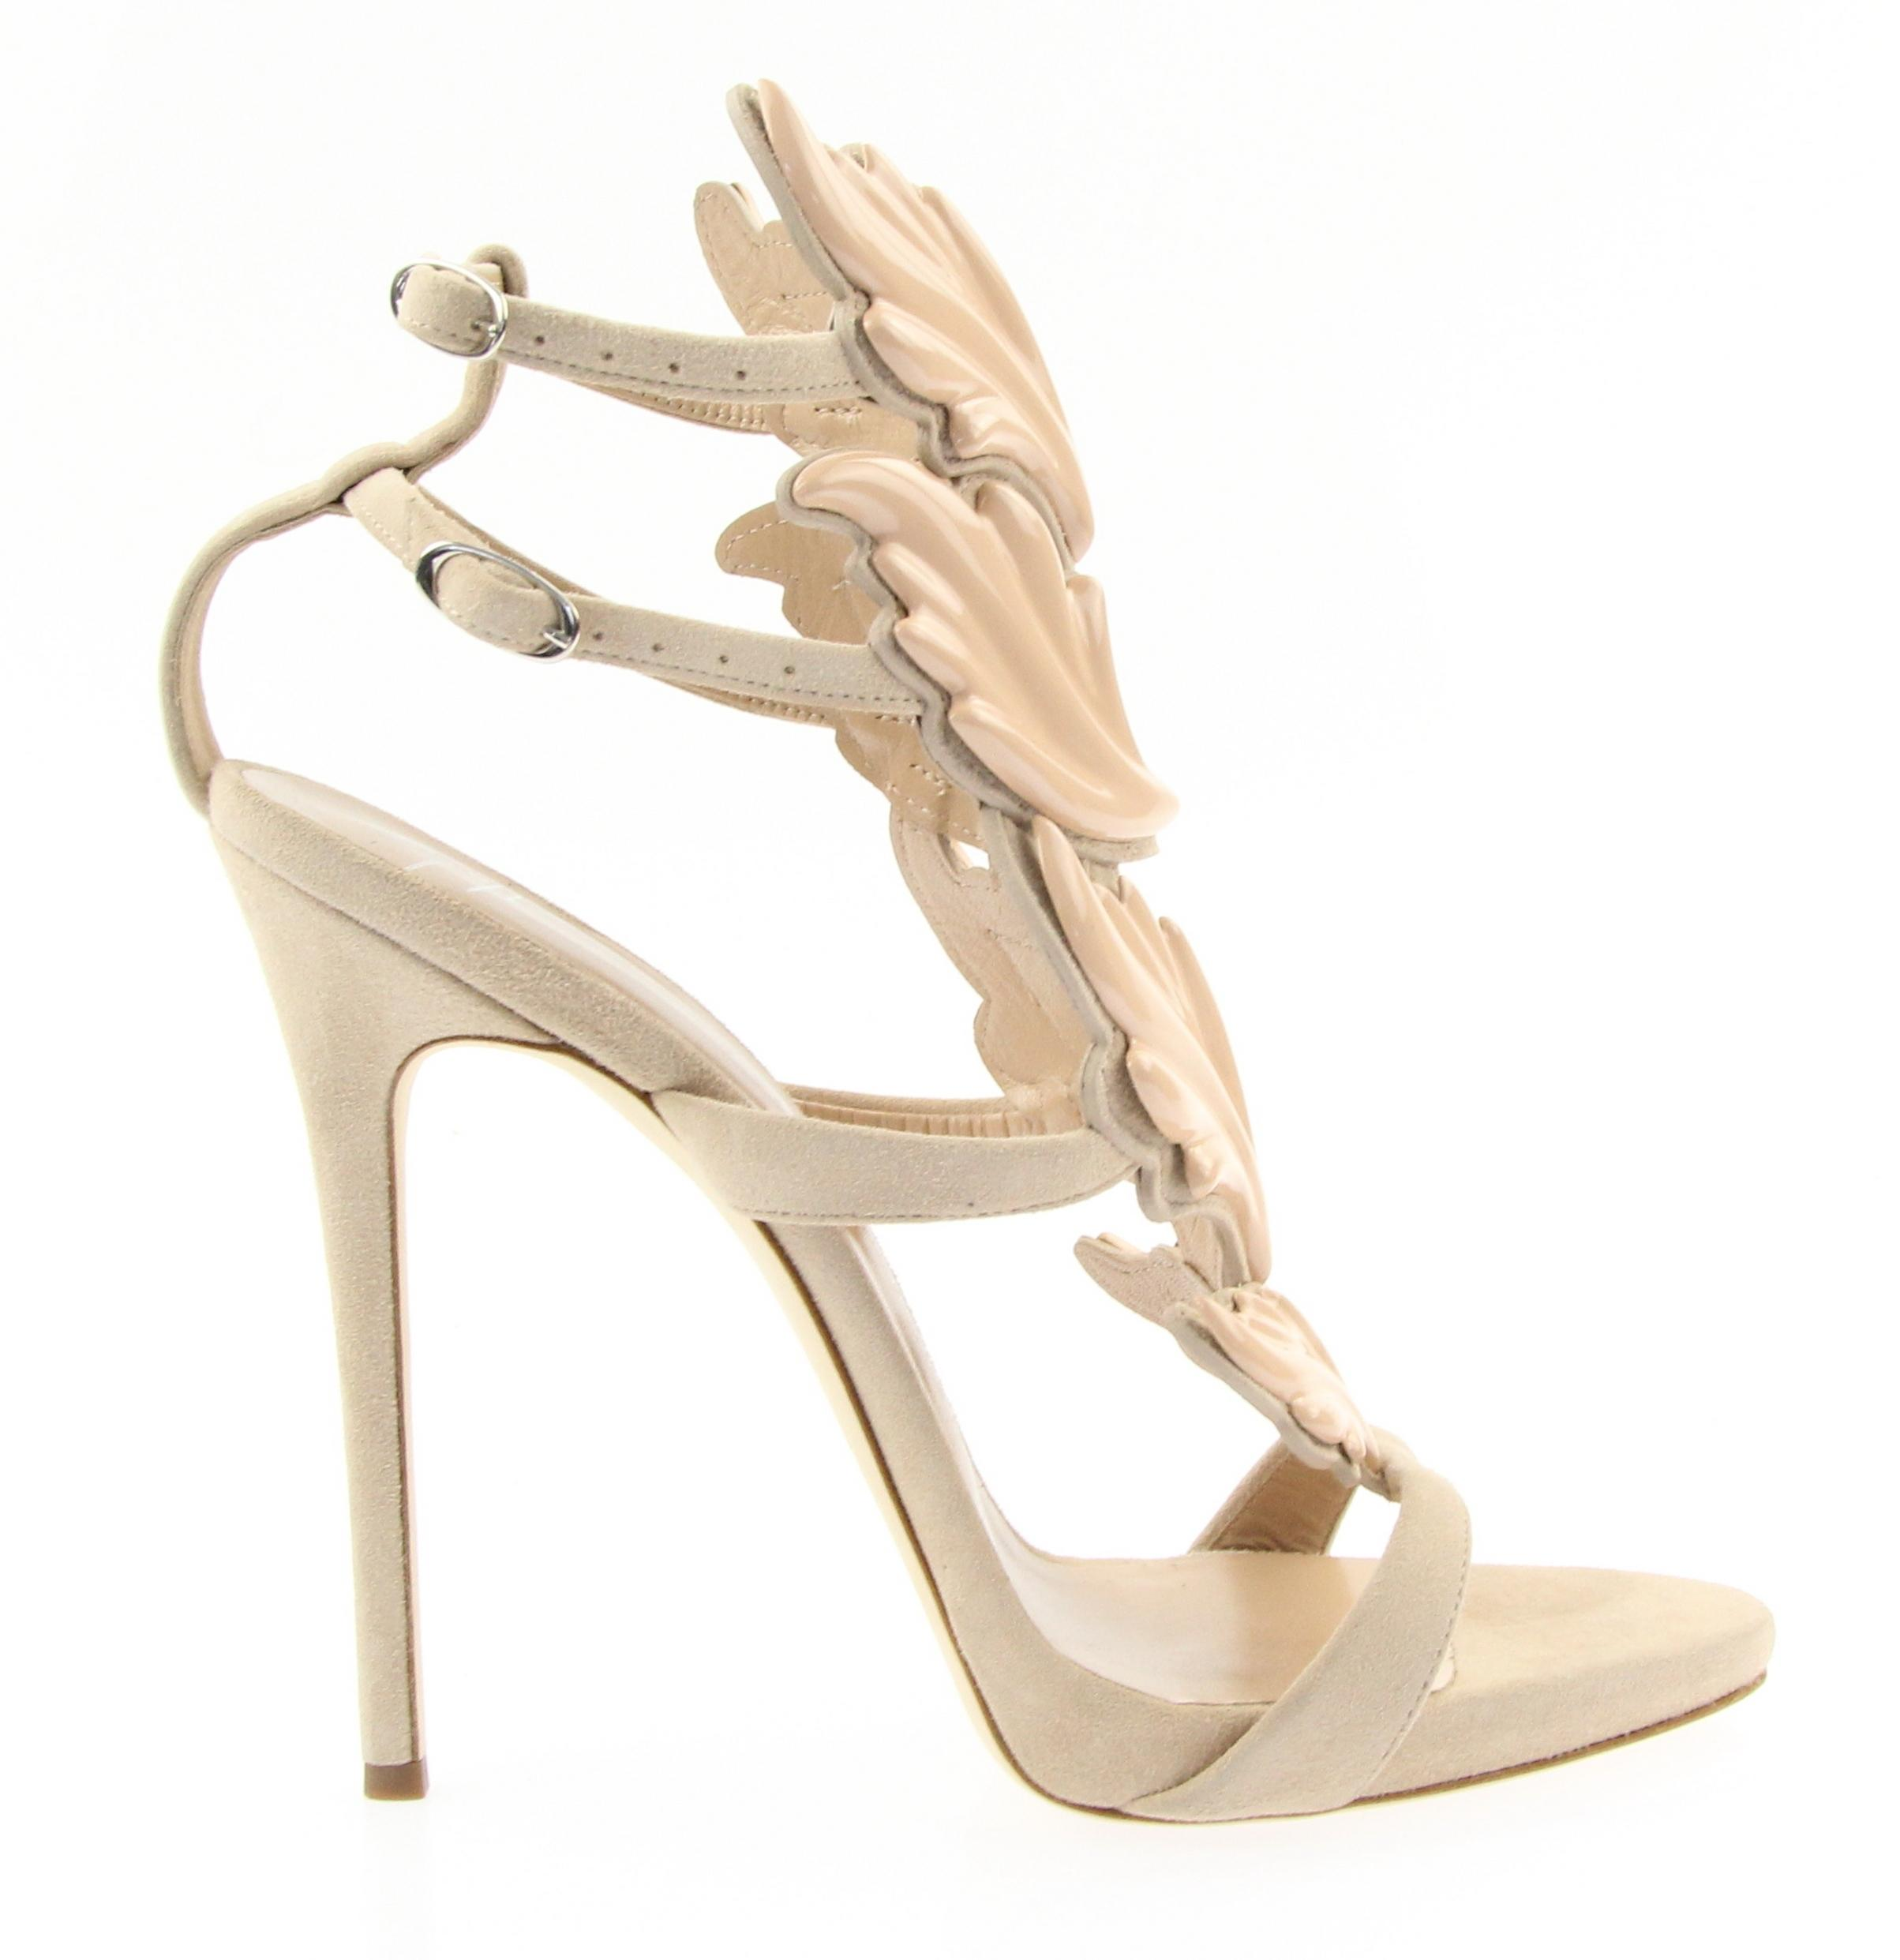 Giuseppe Zanotti Nude Coline Wings 110 Pumps Size EU 40 (Approx. US 10) Regular (M, B)